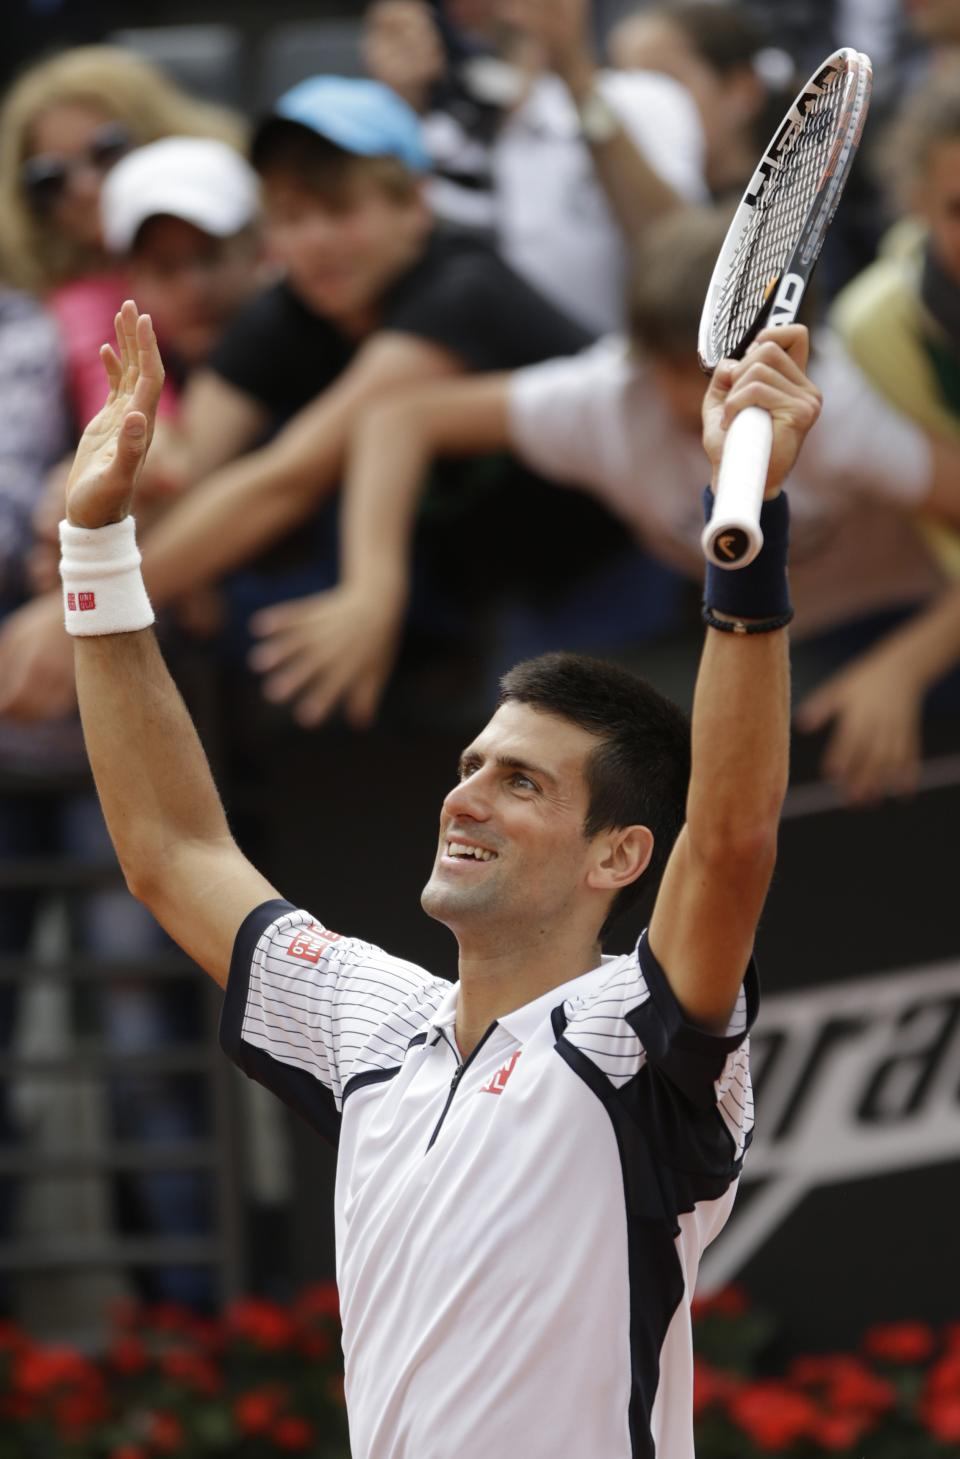 Serbia's Novak Djokovic celebrates after defeating Ukraine's Alexandr Dolgopolov during their match at the Italian Open tennis tournament in Rome, Thursday, May 16, 2013. Djokovic beat Dolgopolov 6-1, 6-4 and advanced to the quarterfinals. (AP Photo/Andrew Medichini)